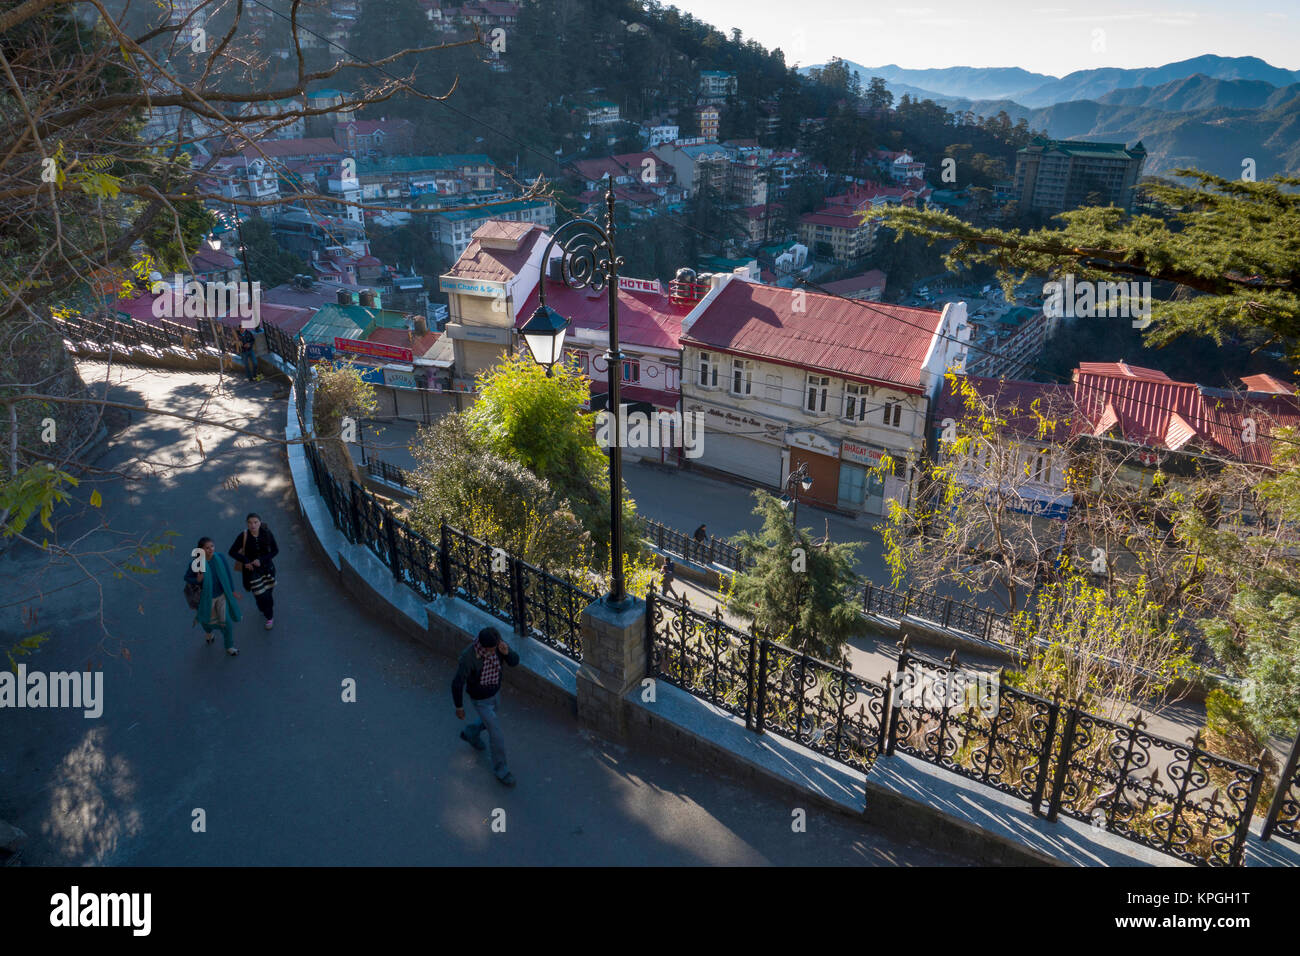 View of the mall in Shimla in Himachal Predesh, India - Stock Image